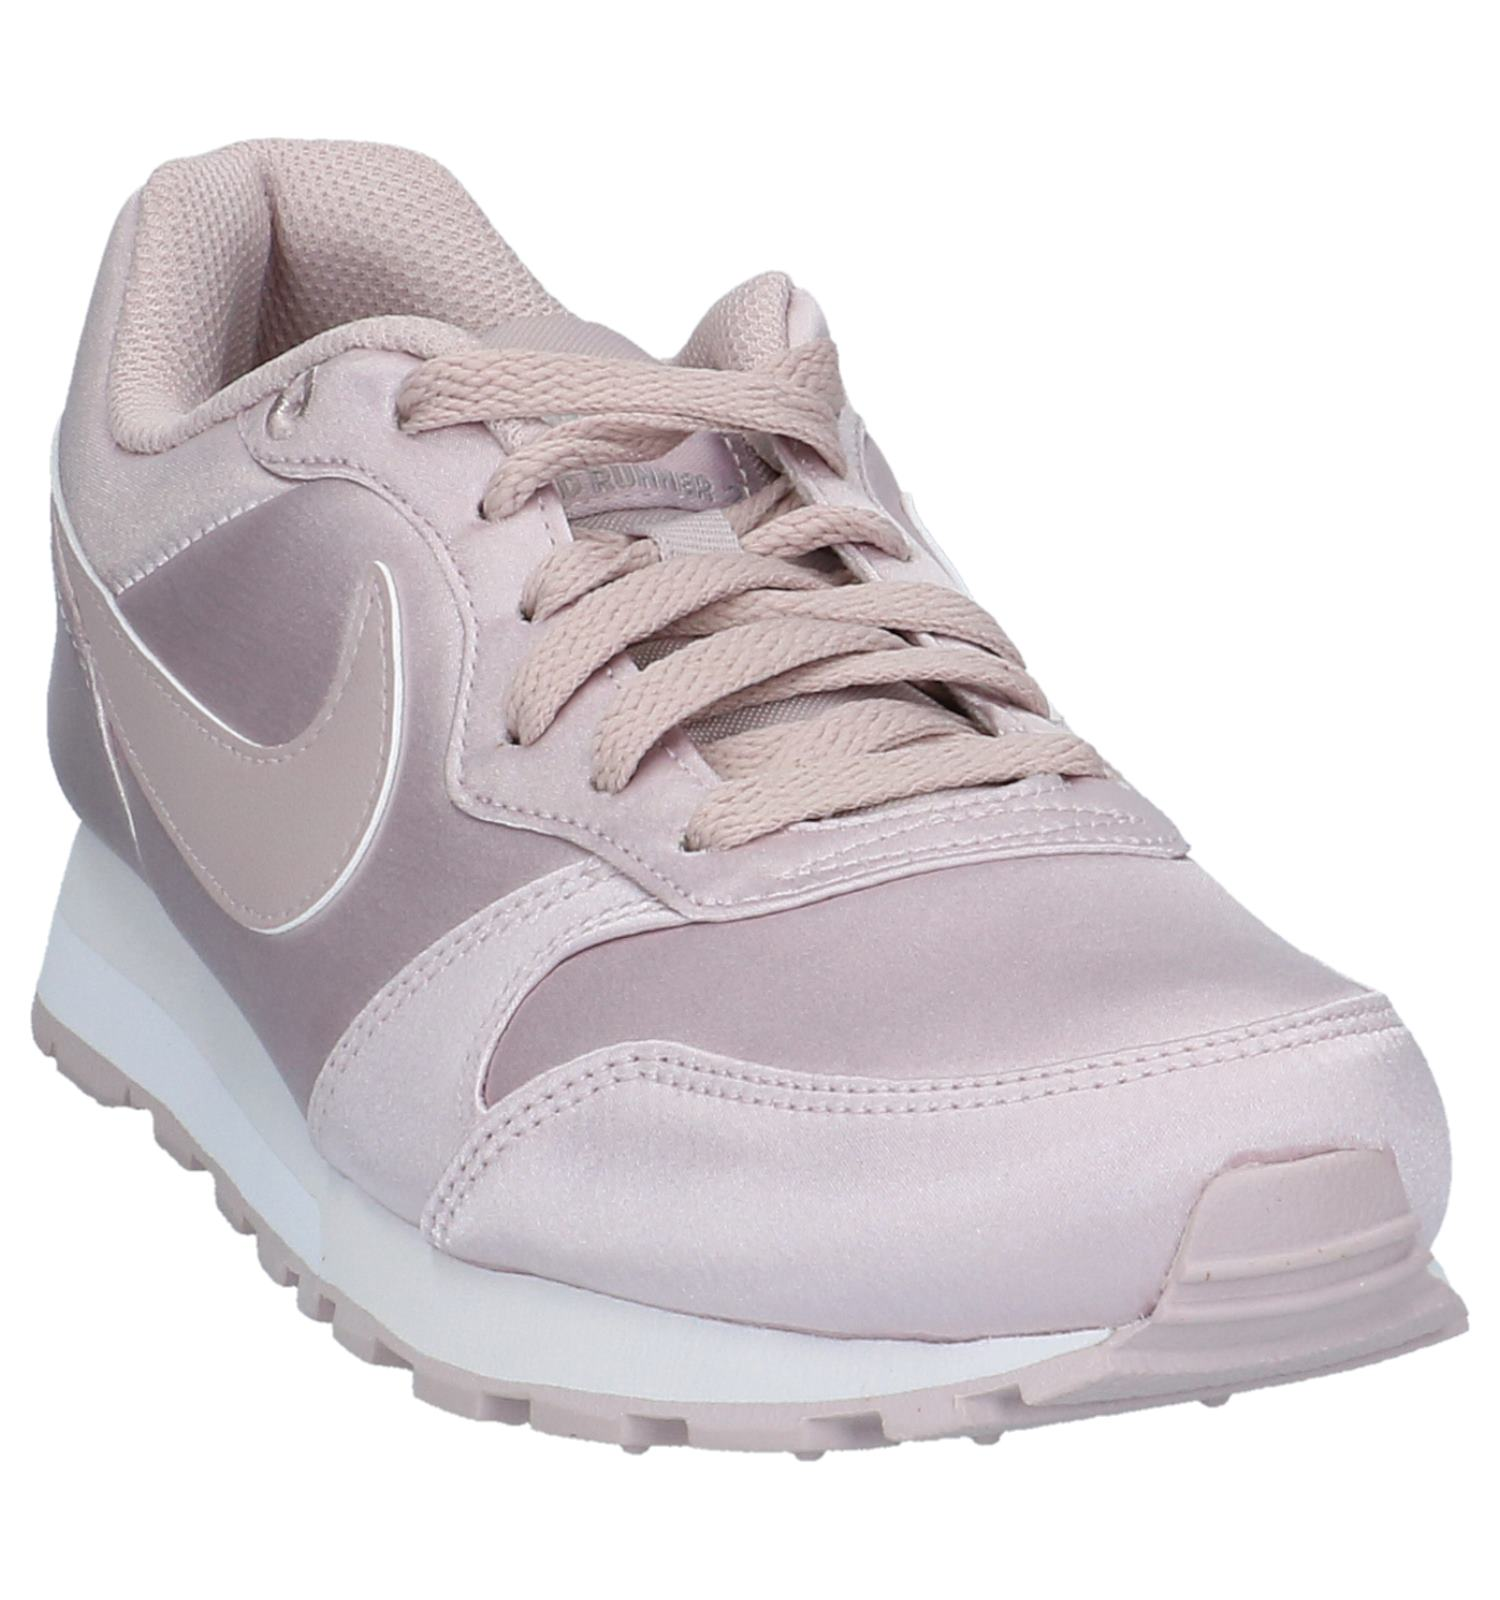 performance sportswear super cheap official Rose Gold Sneakers Nike MD Runner 2 | TORFS.BE | Gratis ...